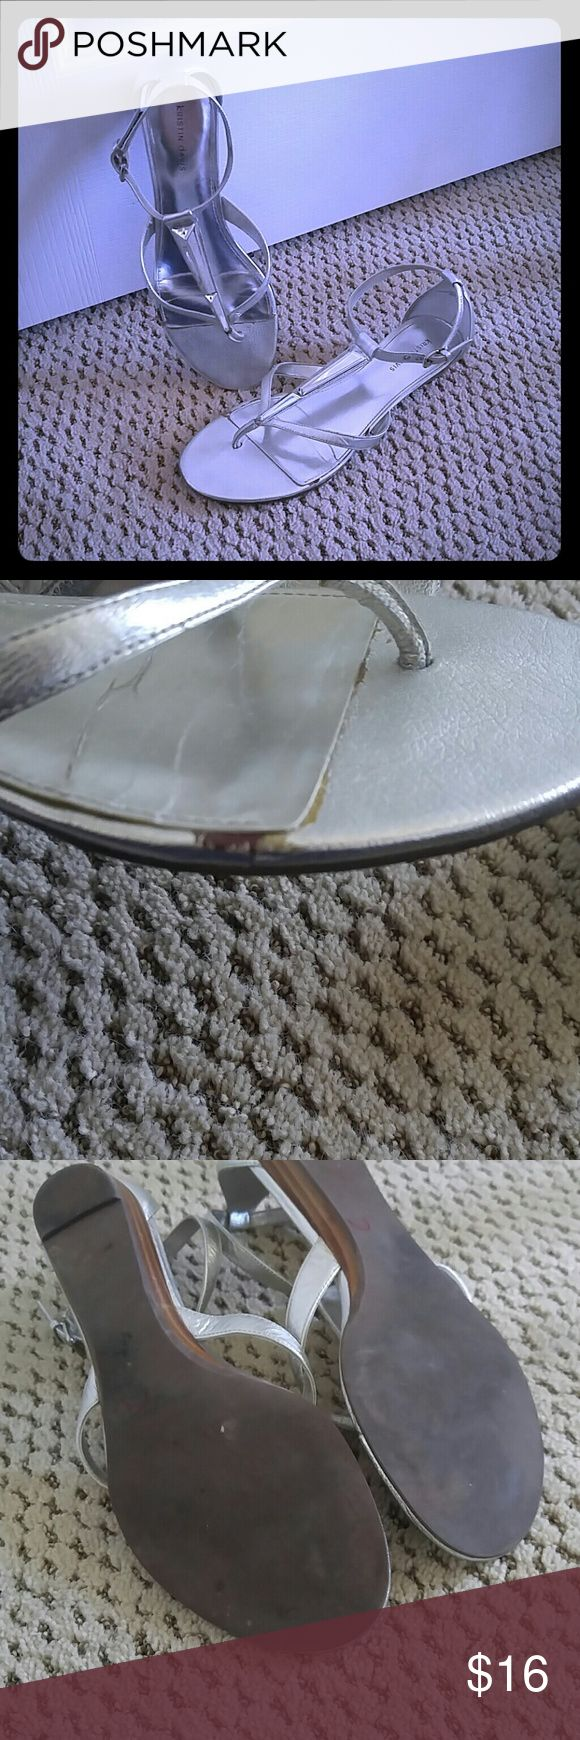 Silver flat sandals by Kristin Davis Strappy silver sandals great for dressing up or down.  Some wear as shown in the 2nd photo but overall good condition. Kristin Davis Shoes Sandals